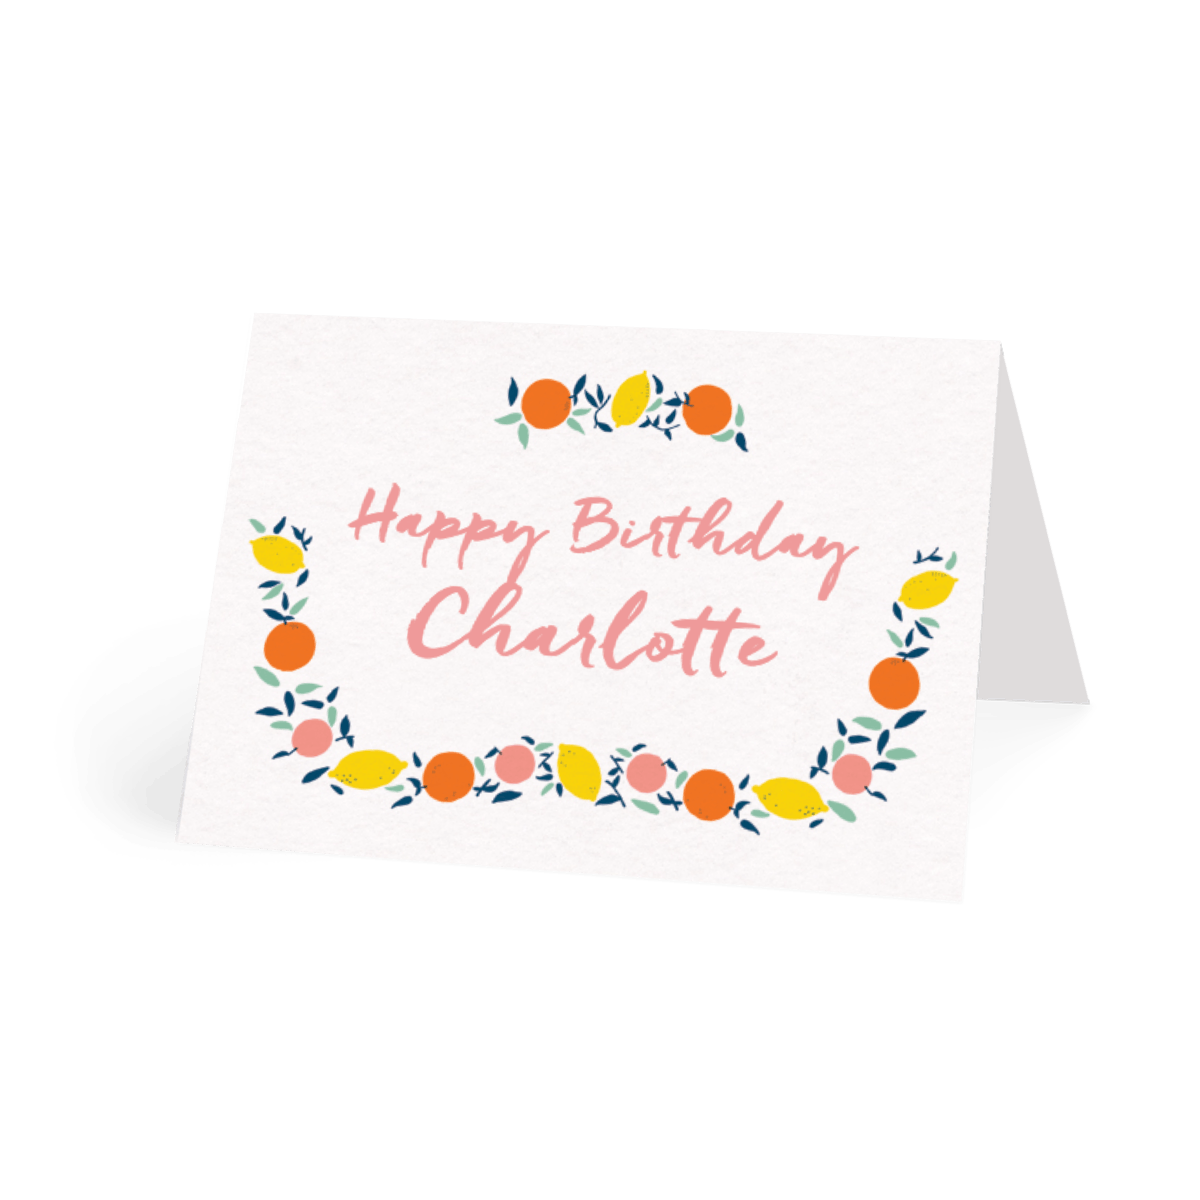 Https%3a%2f%2fwww.papier.com%2fproduct image%2f884%2f14%2fcitrus birthday 255 front 1453909560.png?ixlib=rb 1.1